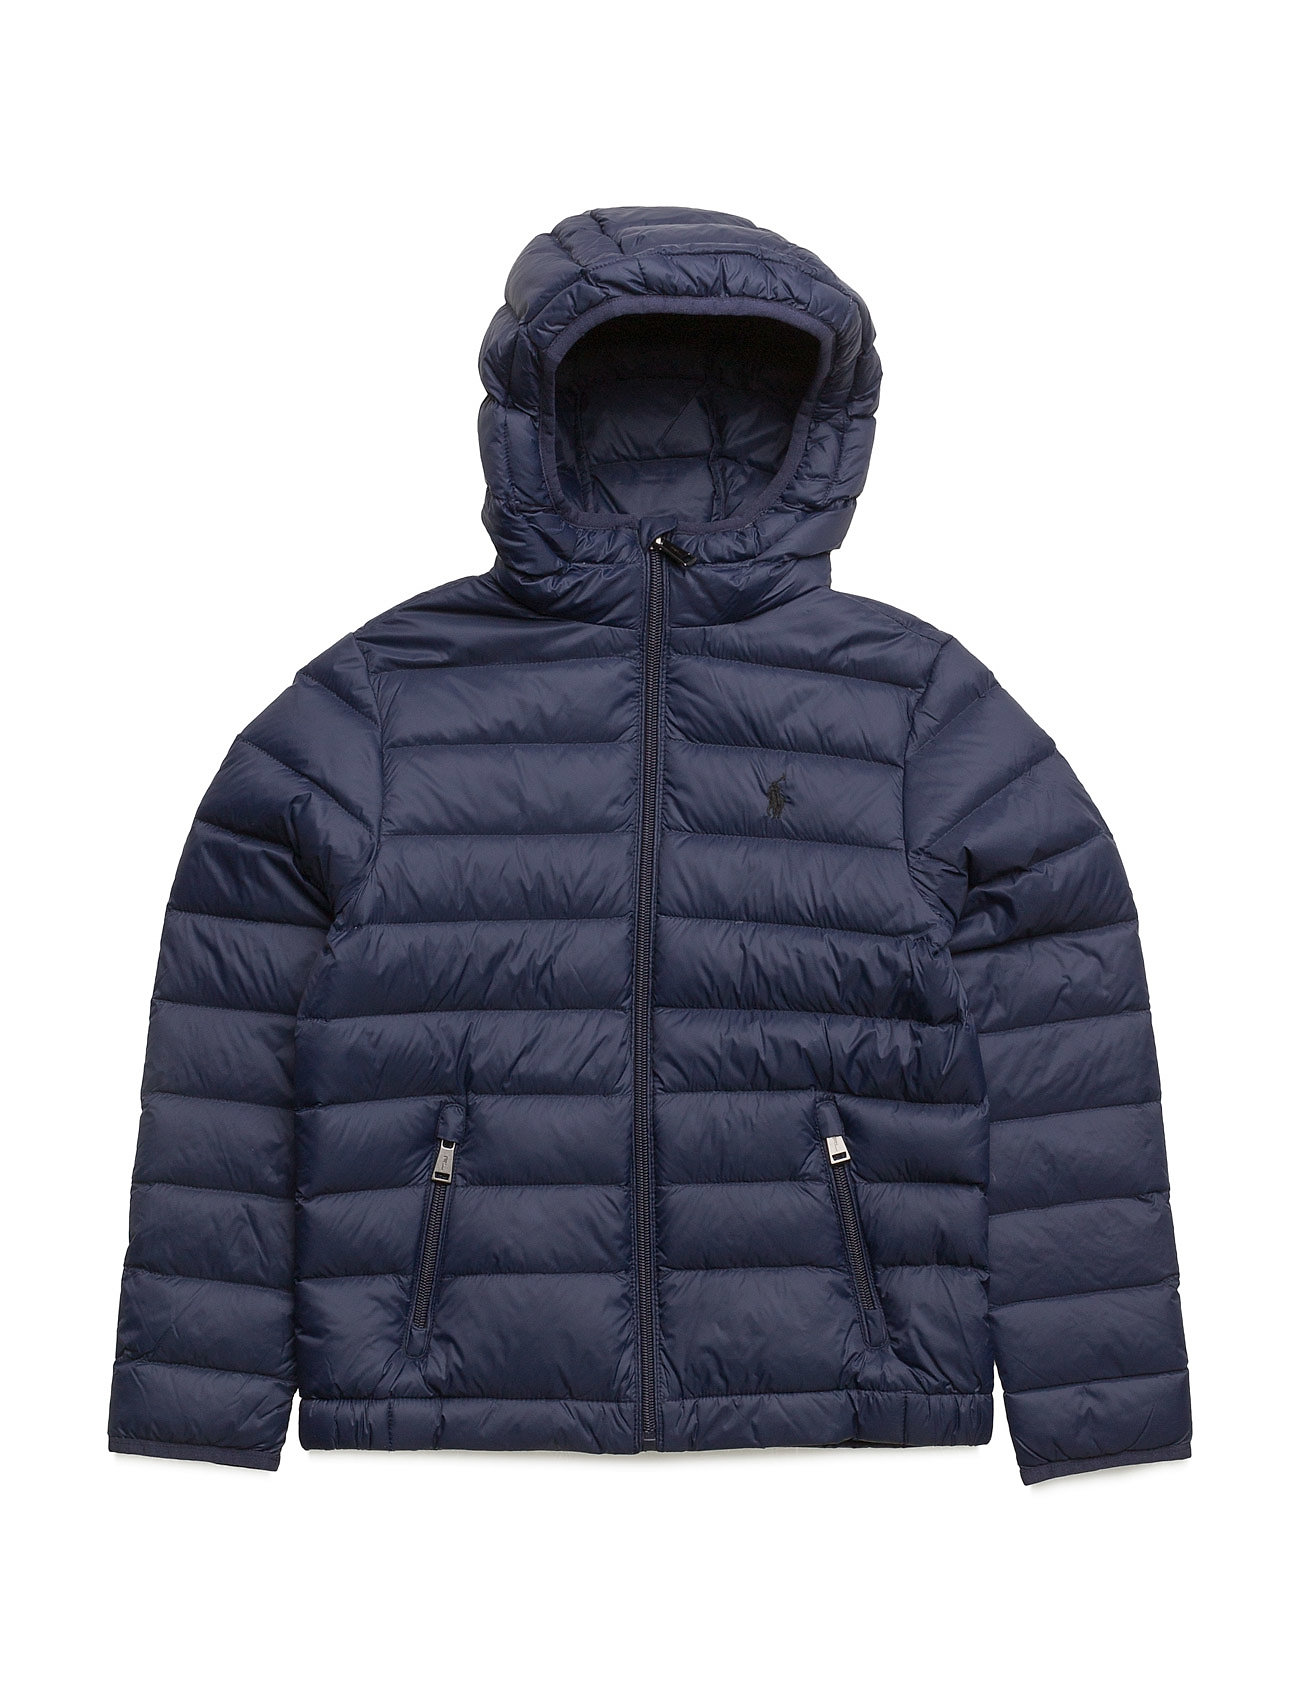 Packable Quilted Down Jacket (French Navy) (£77.40) - Ralph Lauren ... : quilted down jacket - Adamdwight.com